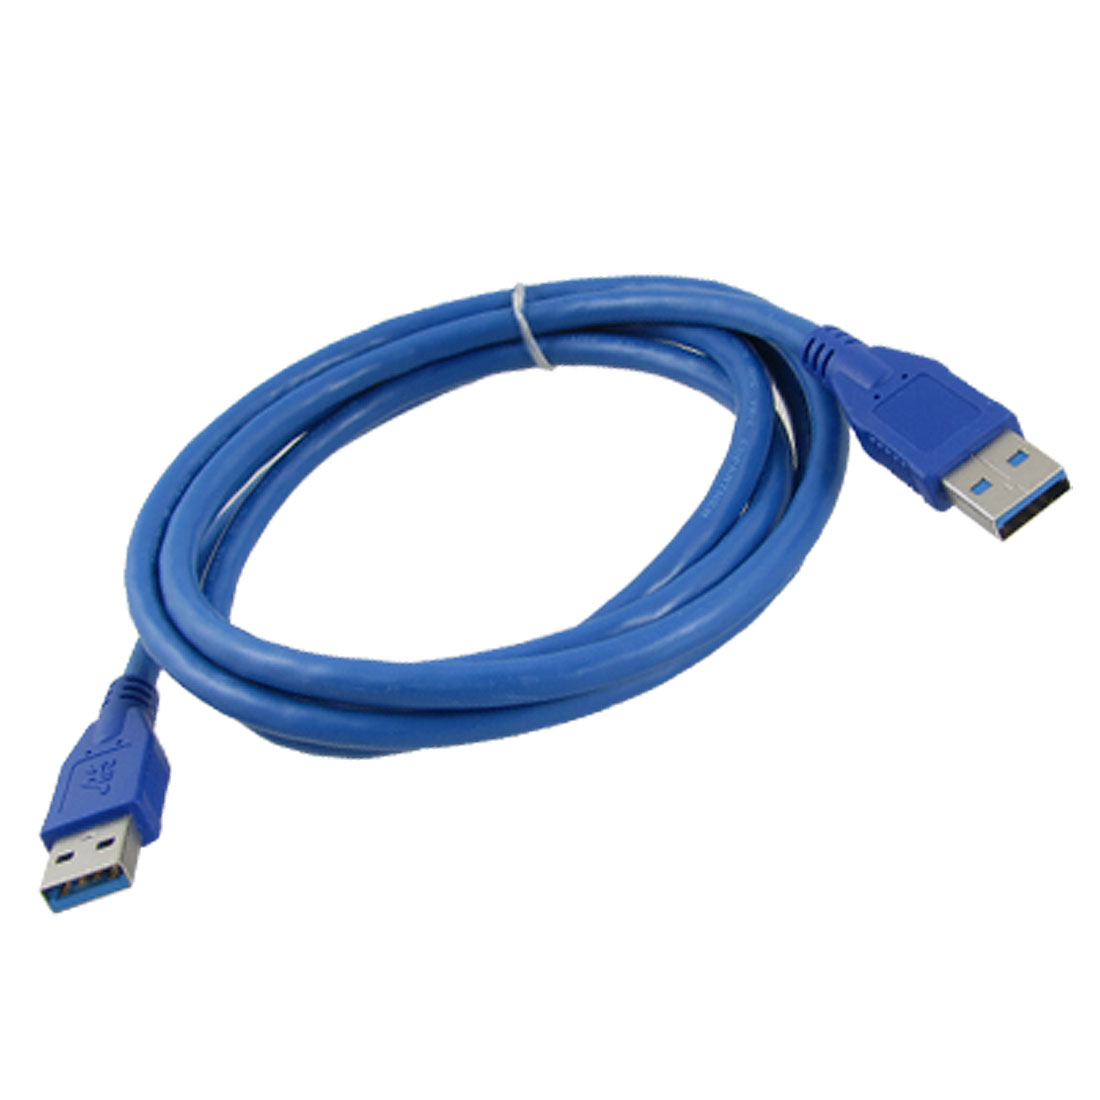 Blue Flexible USB 3.0 Type A Male to Male Cable Connector 1.5M